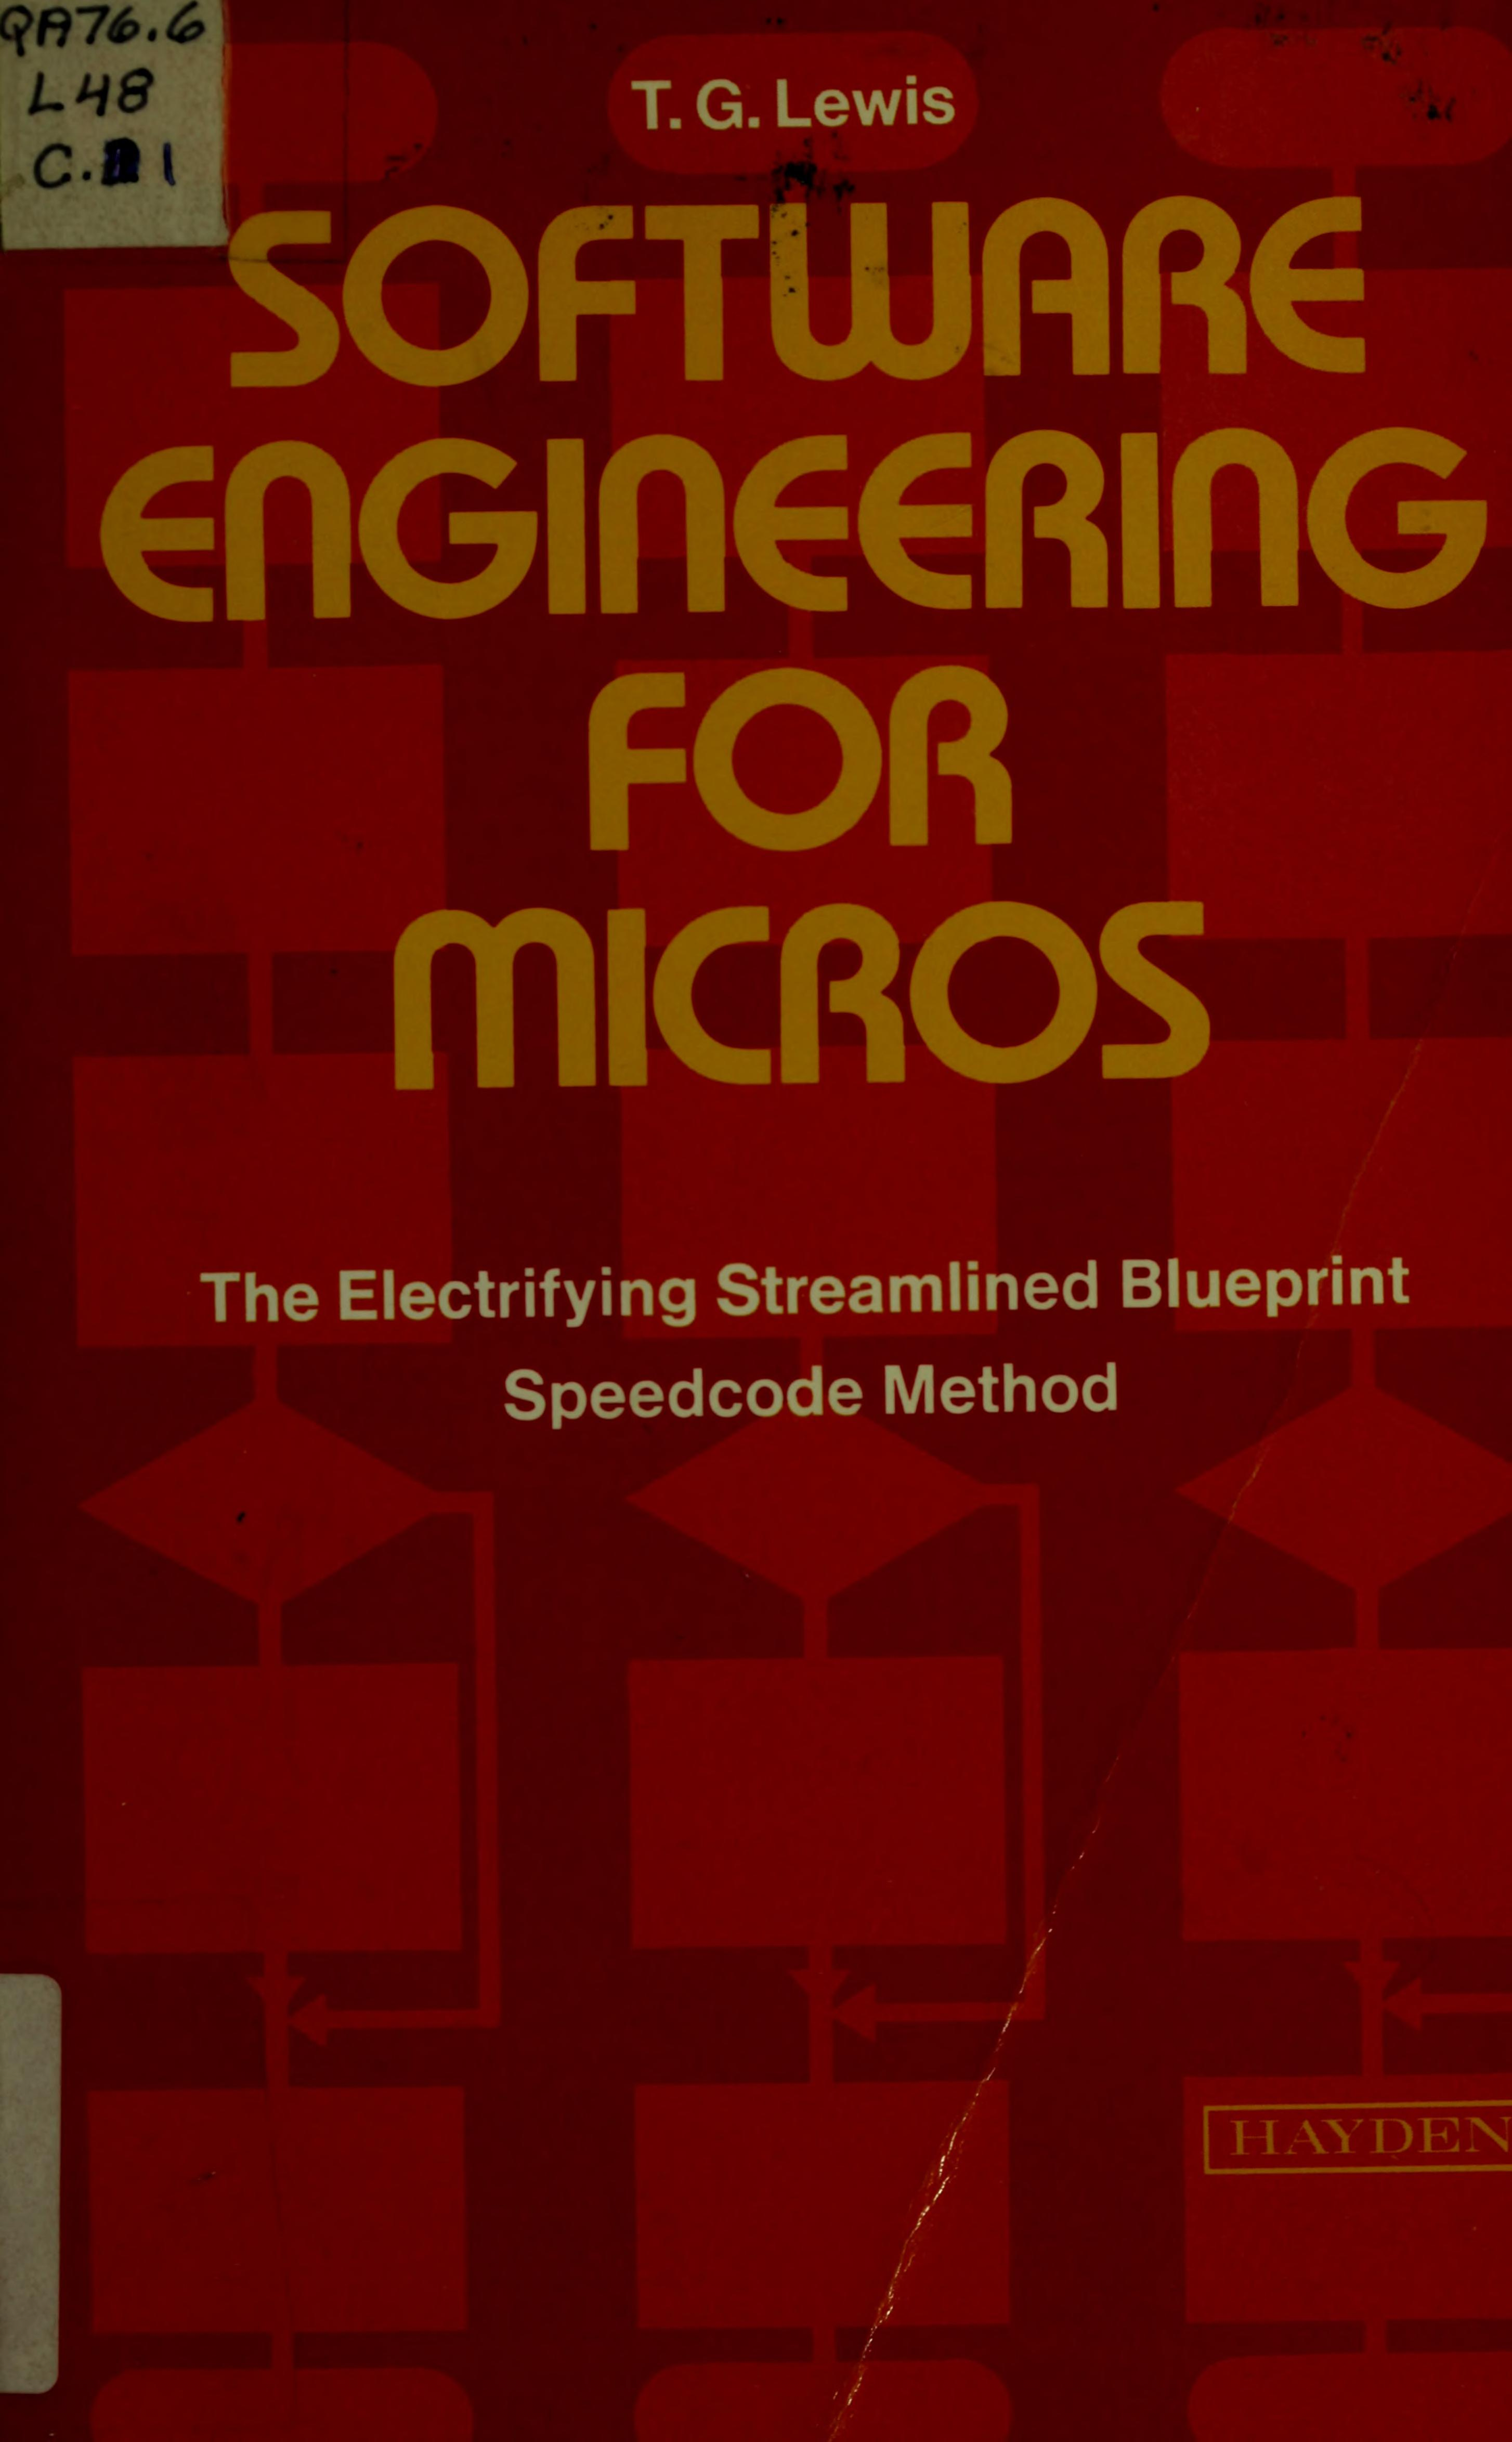 Ebook software engineering for micros download online audio id ebook software engineering for micros download online audio idodzyoz6 malvernweather Image collections